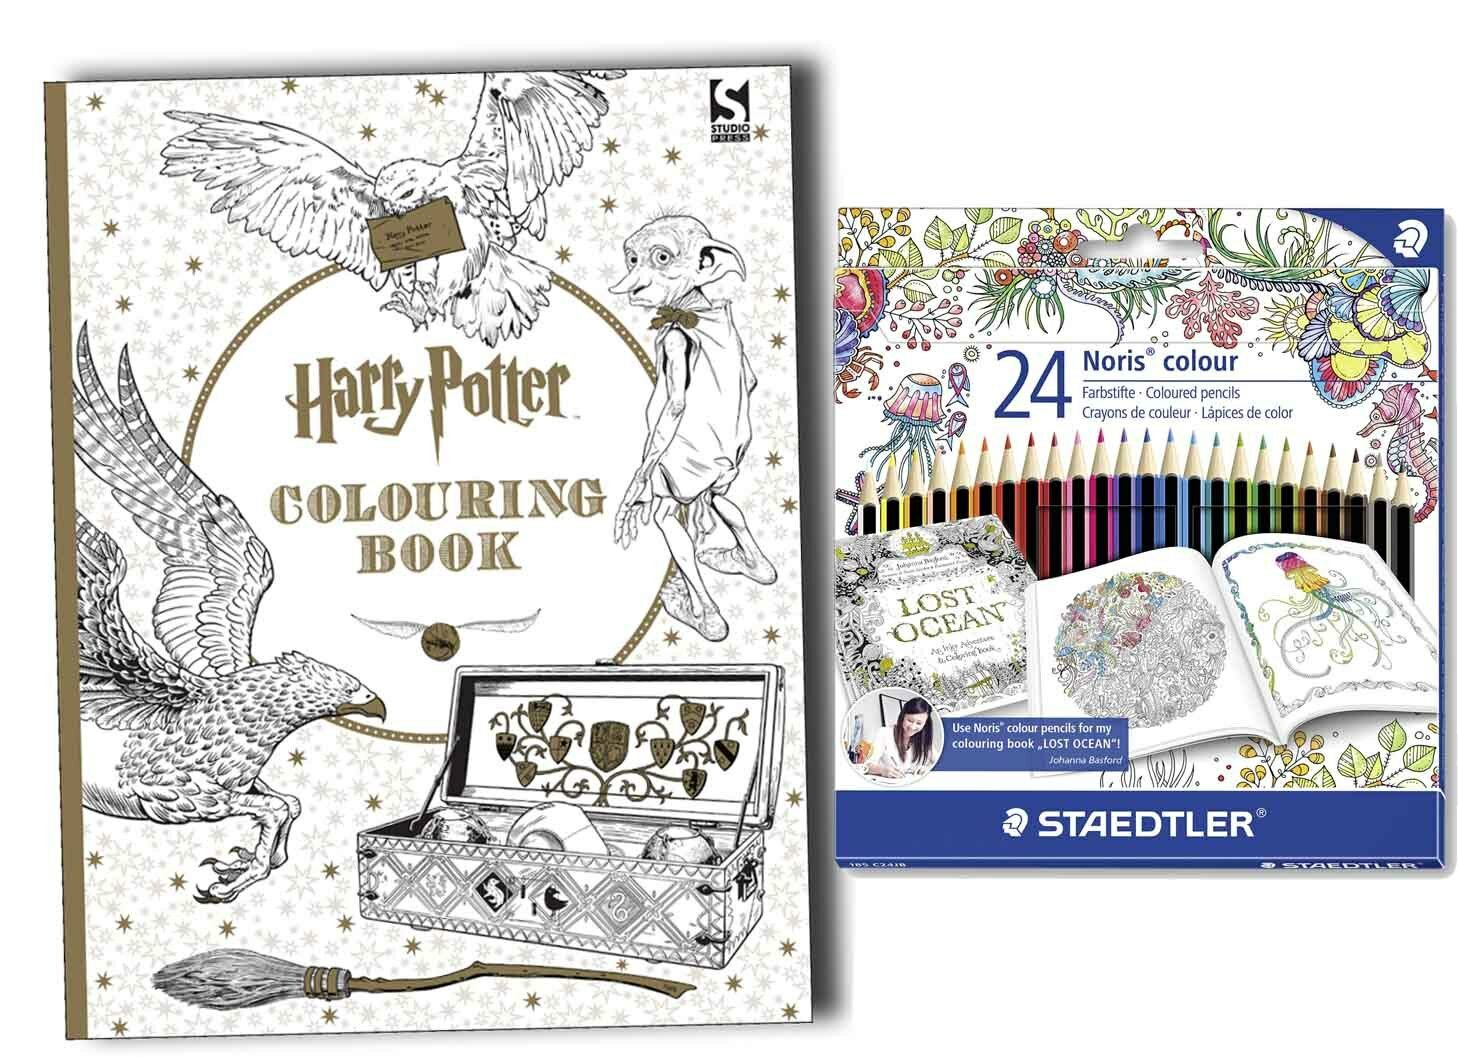 Harry Potter Colouring Book With Pack Of 24 Steadler Pencil